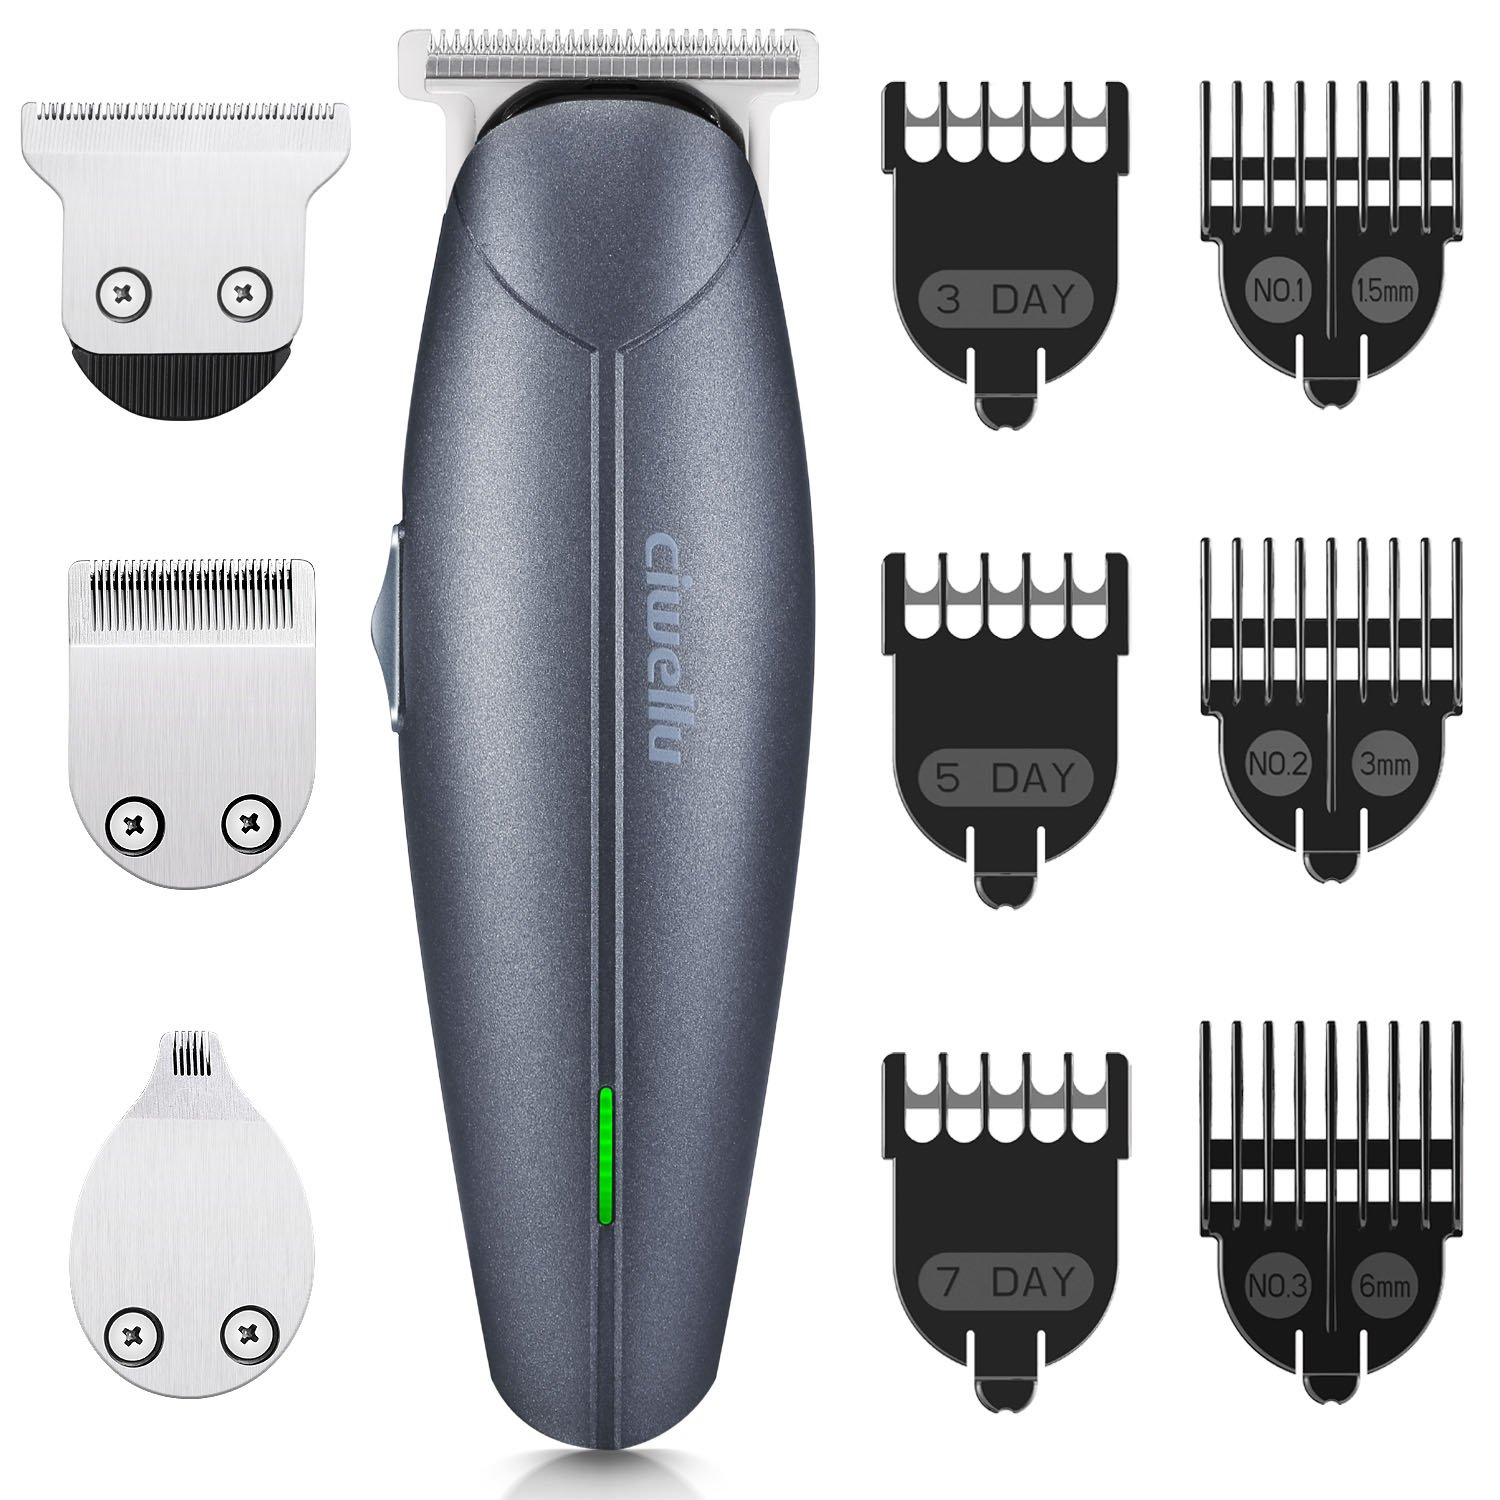 Beard Trimmer Kit, Ciwellu Hair Cut Clippers Cordless USB Rechargeable Multi-functional Hair Cutting Trimmer Body Personal Grooming Kit of Mustache Trimmer, 7 Precision Length Settings Combs